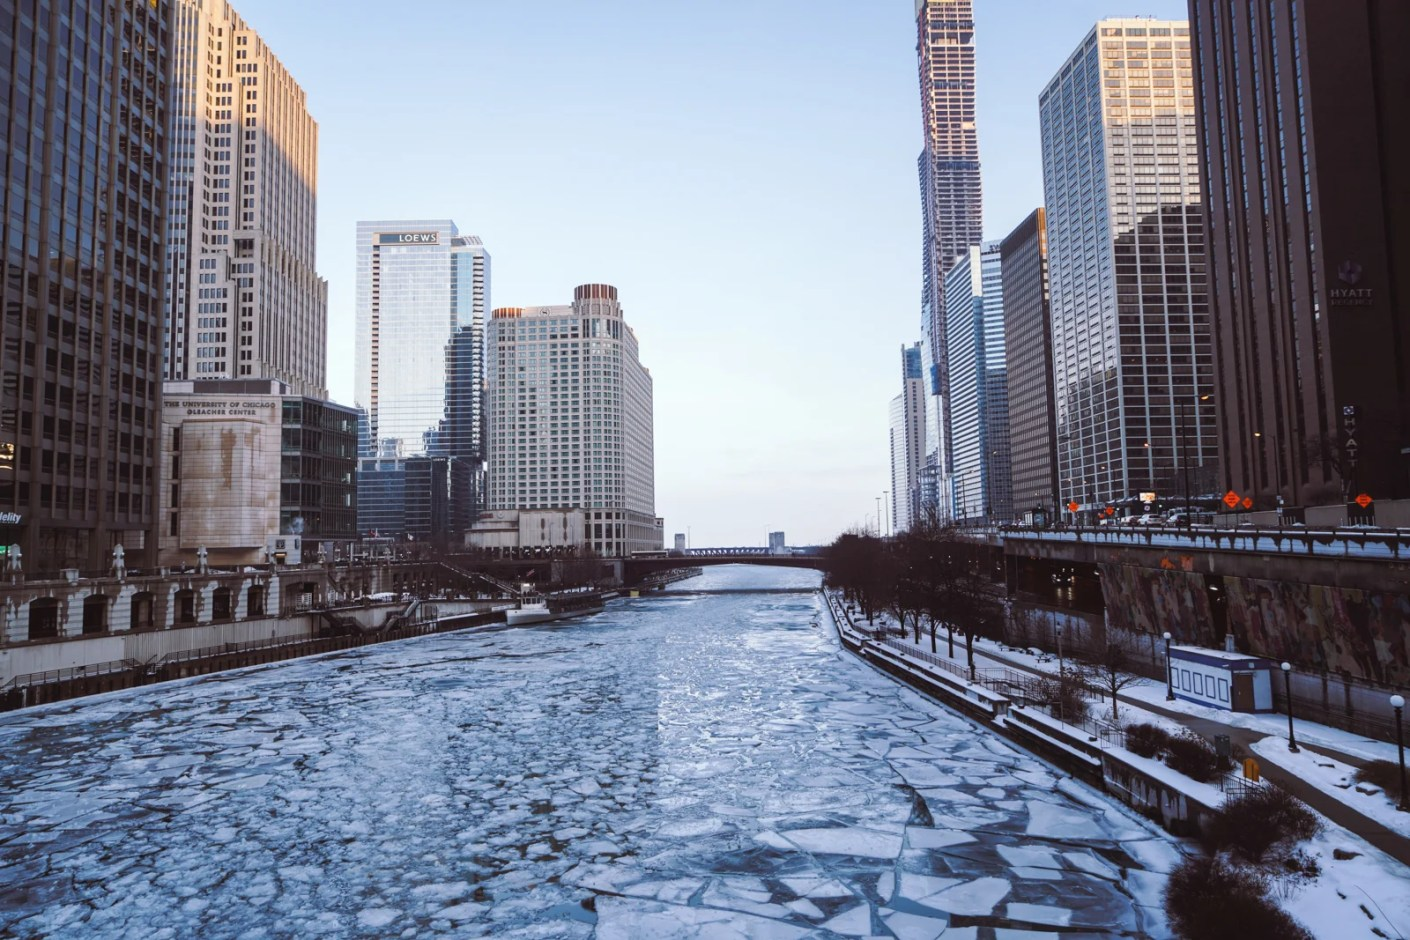 A frozen-over Chicago River. (Photo by Yomex Owo / Unsplash)